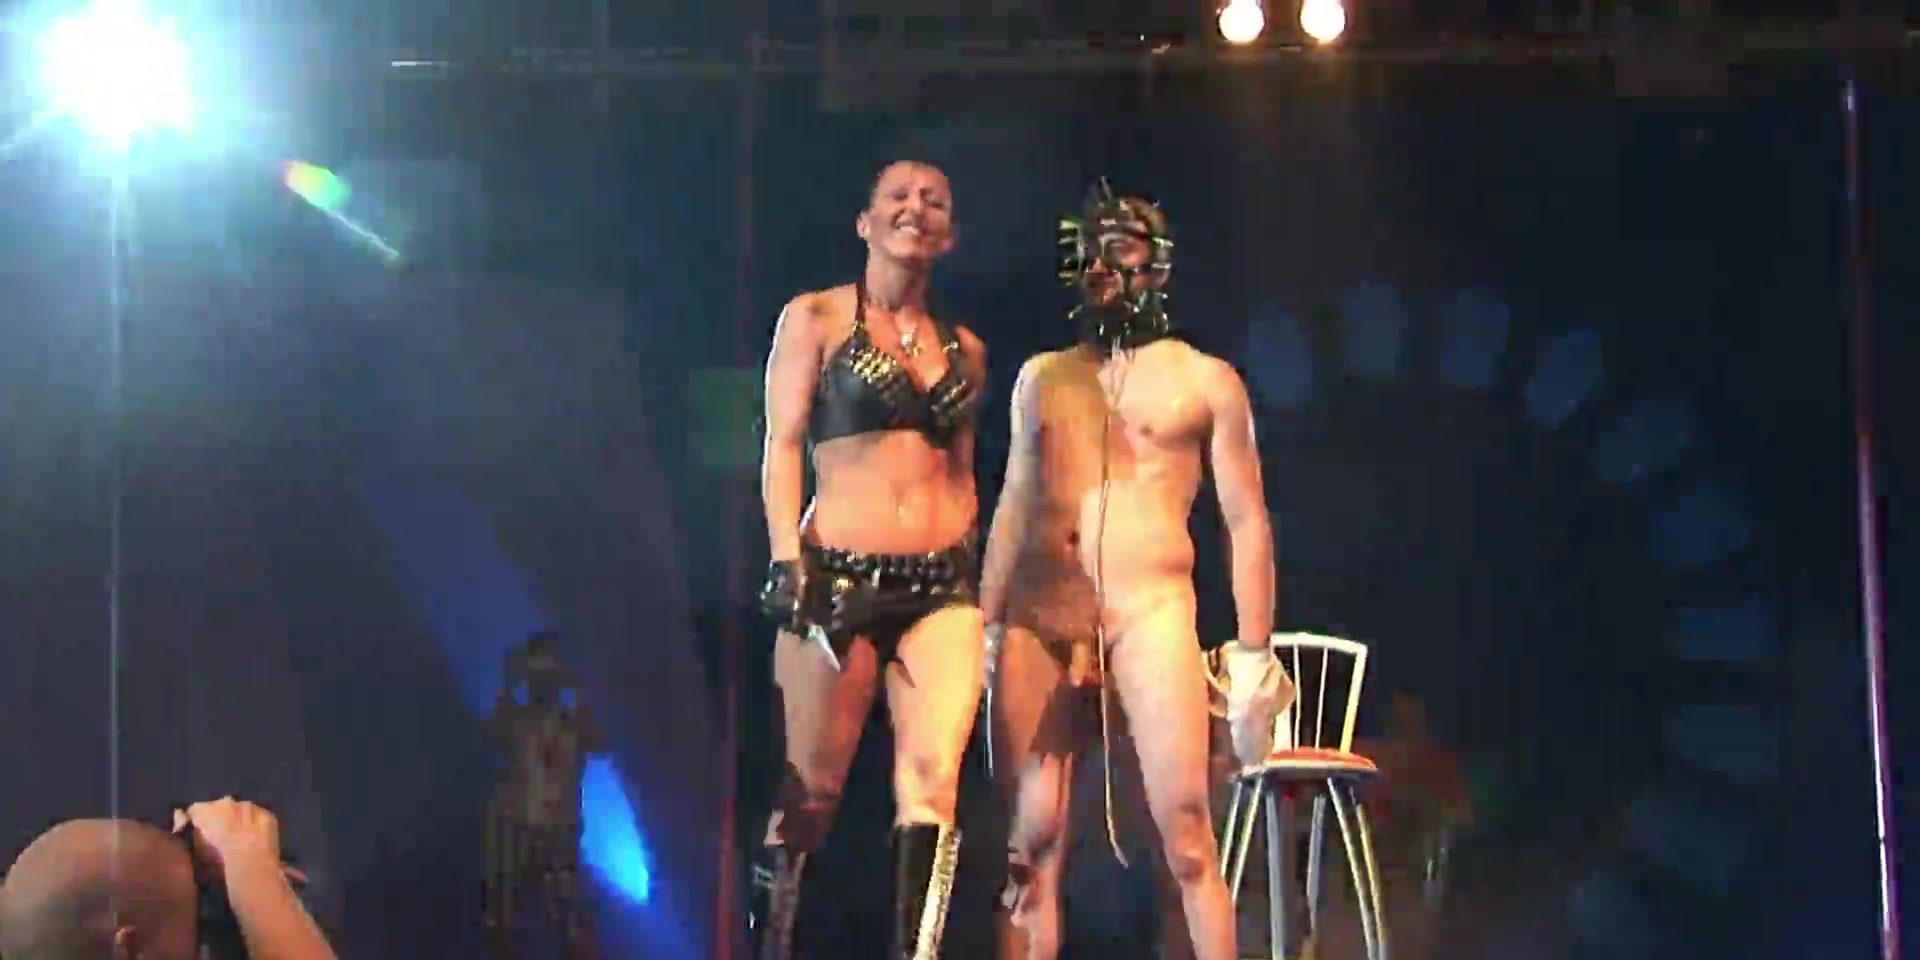 crazy fetish needle show on stage